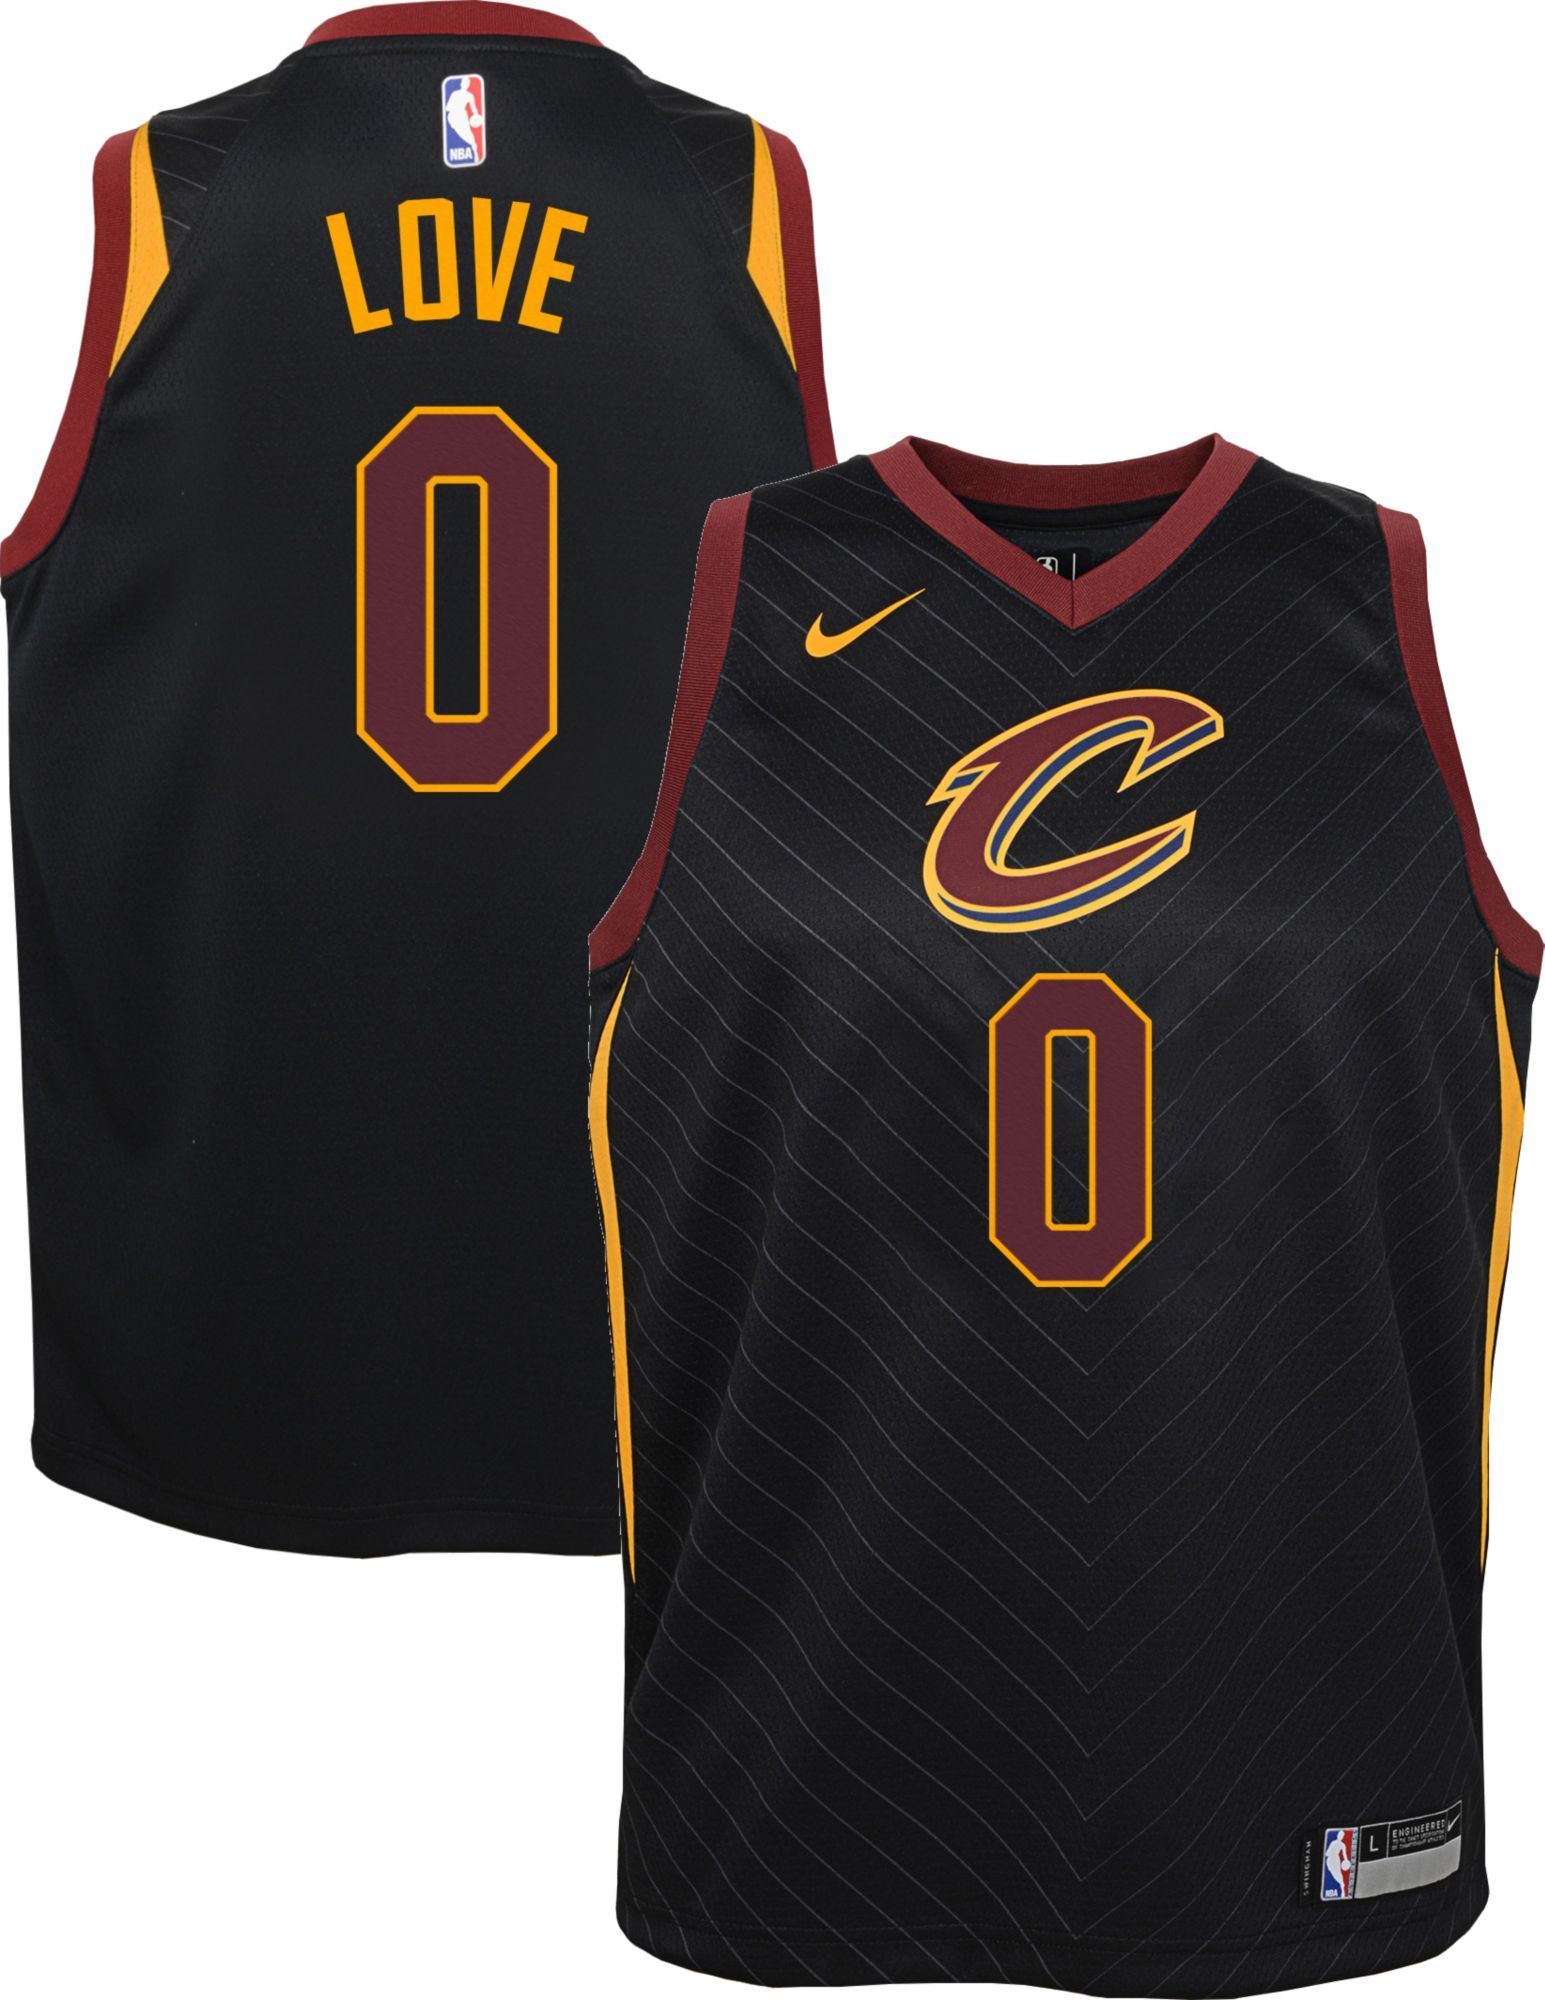 check out 53636 34039 Nike Youth Cleveland Cavaliers Kevin Love #0 Black Dri-FIT ...